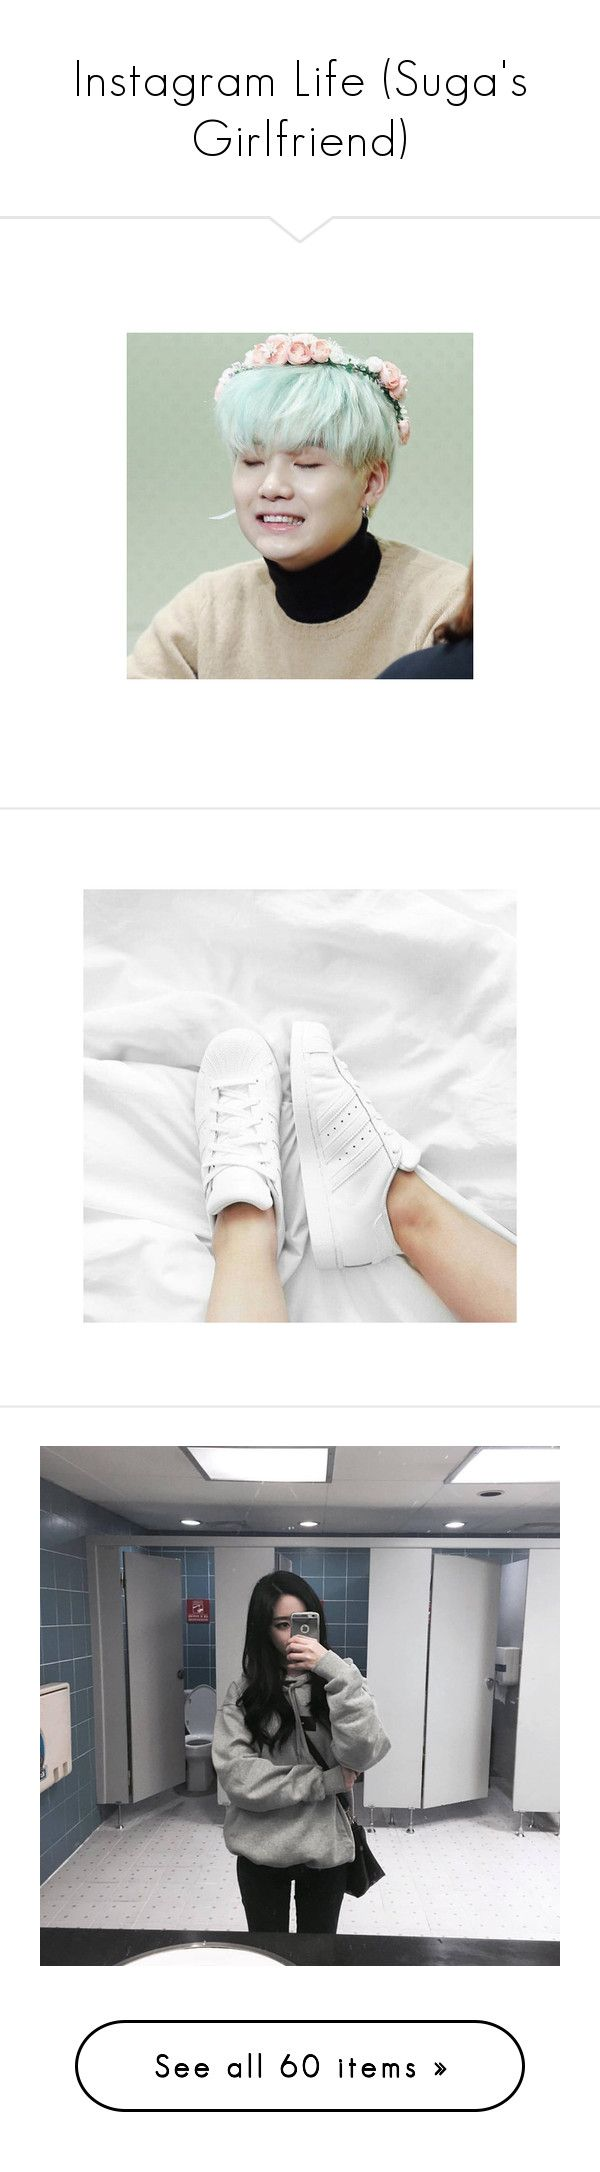 """""""Instagram Life (Suga's Girlfriend)"""" by anninhasanguinetti-435 ❤ liked on Polyvore featuring bts - suga, bts, kpop, pics, pictures, 4u, couples, idols, suga and instagram"""